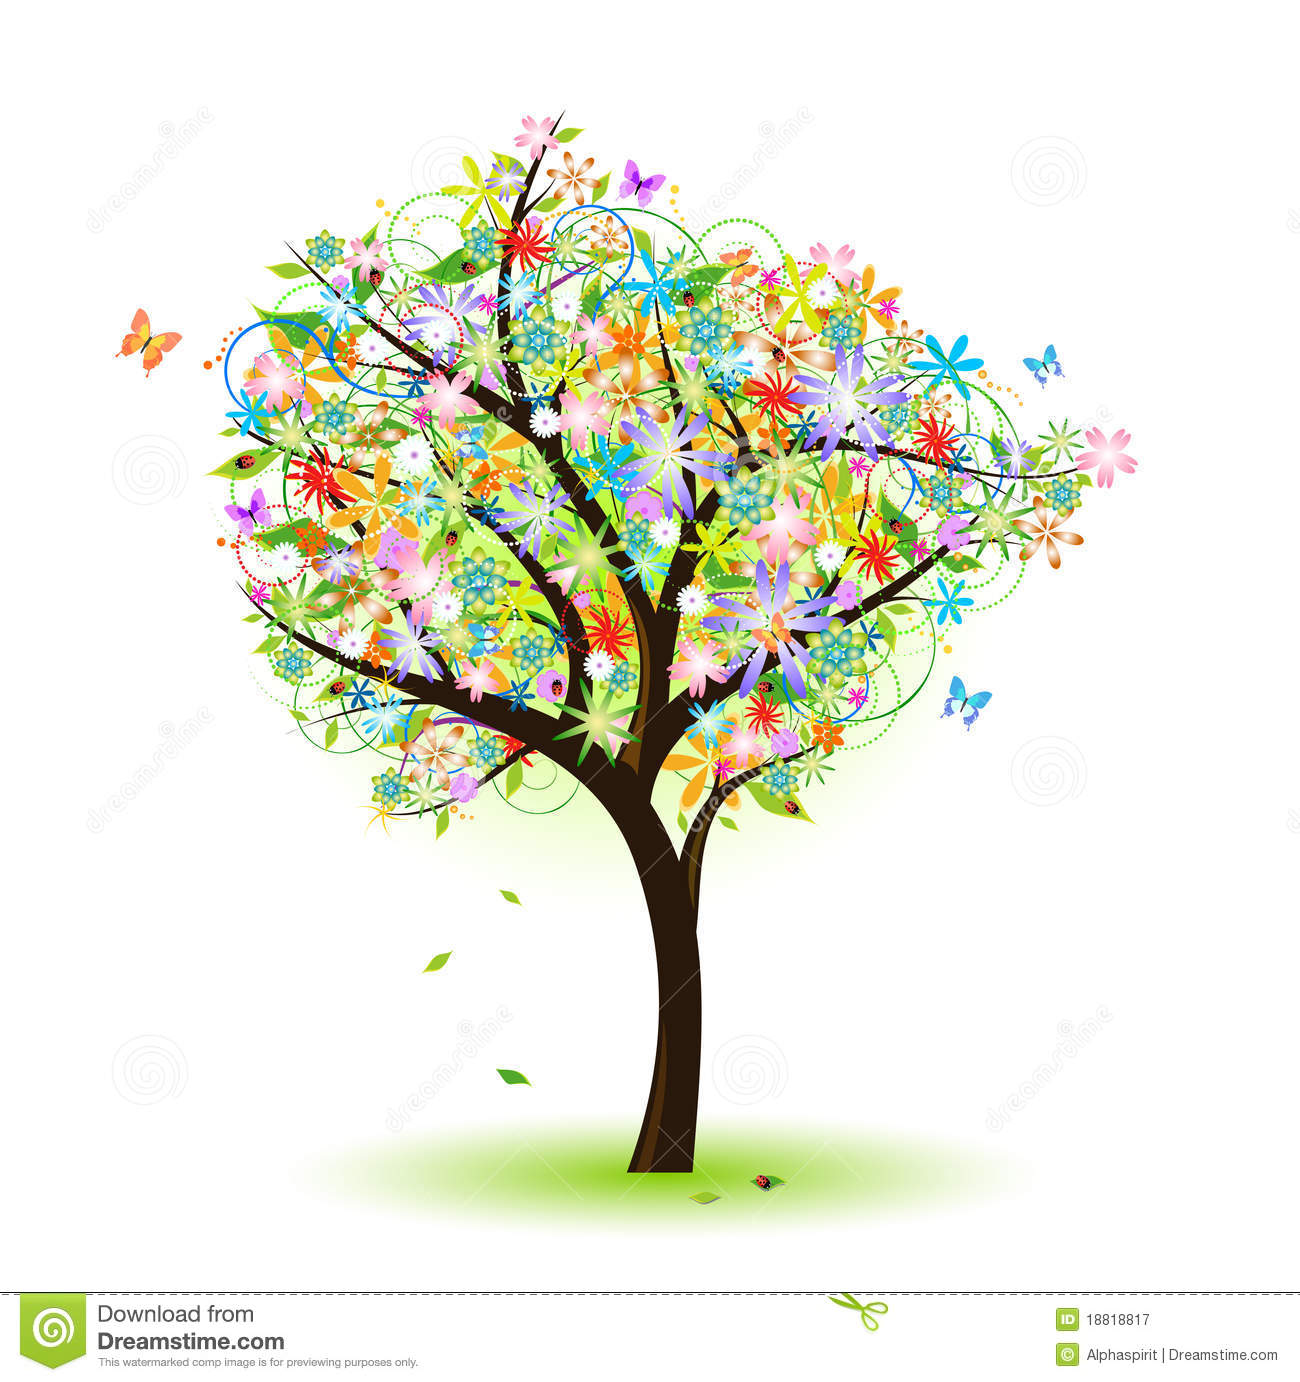 More similar stock images of ` Colorful tree `